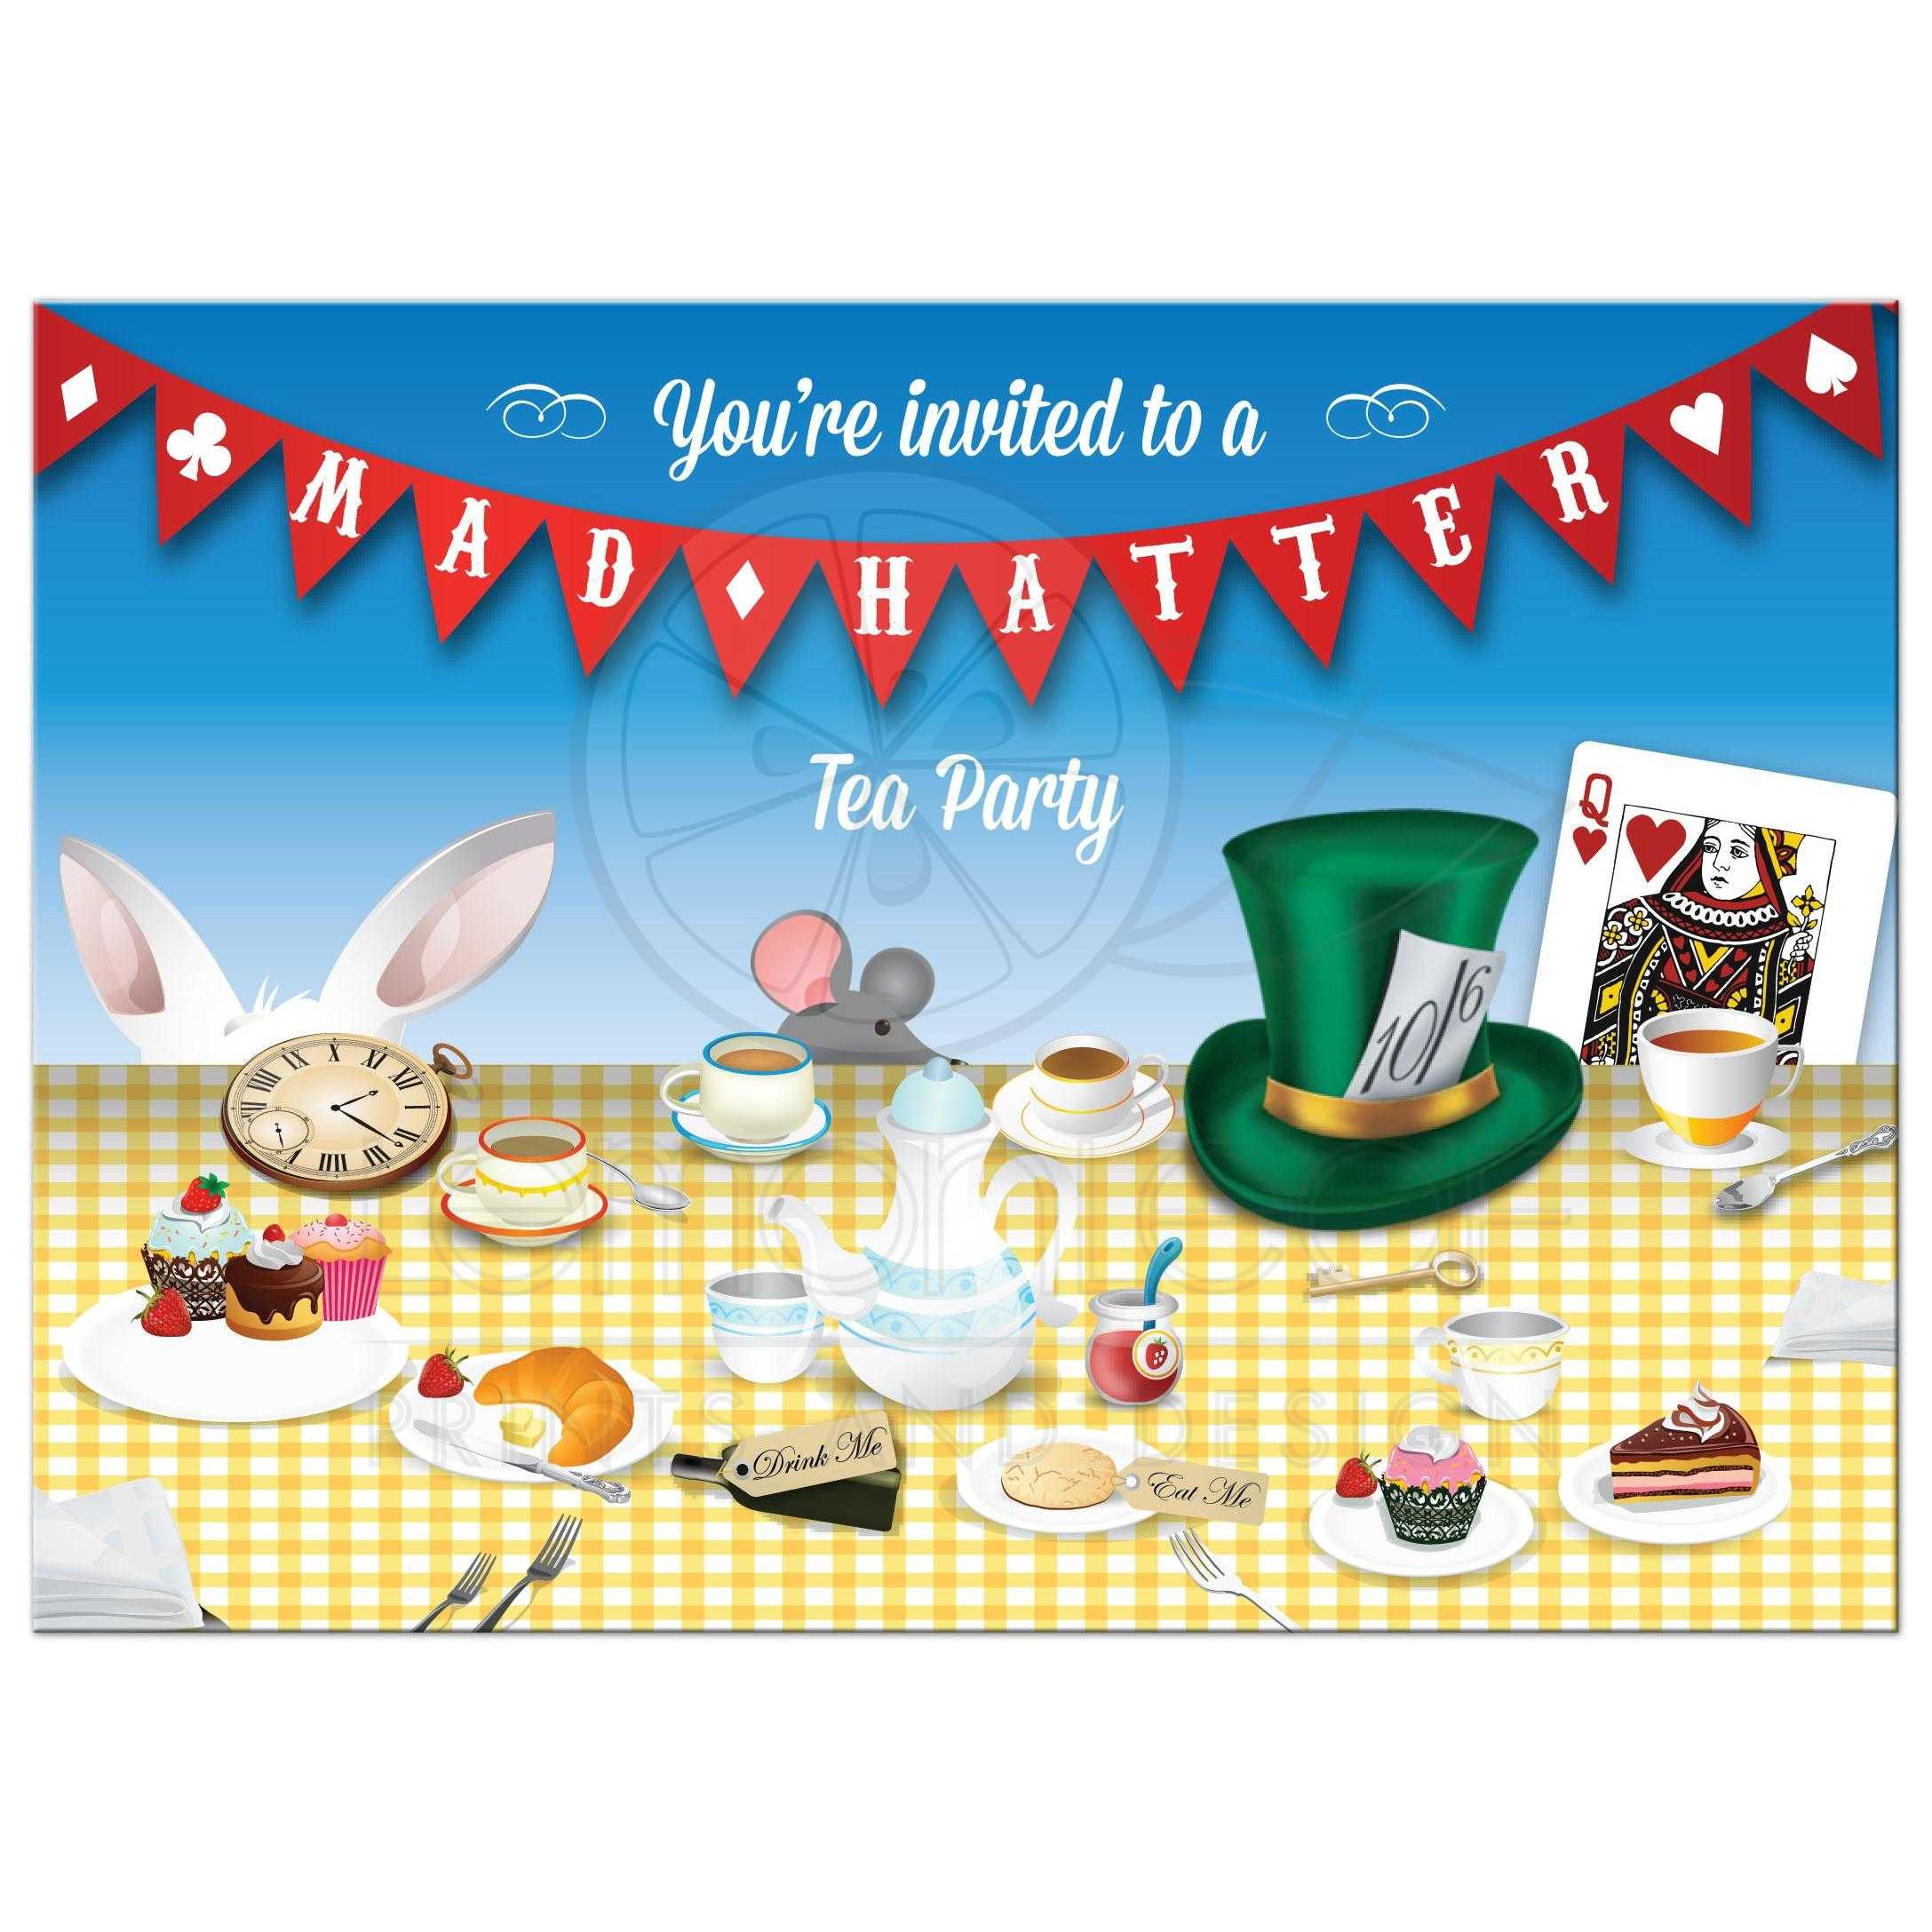 Party Invitation Mad Hatter Tea Party